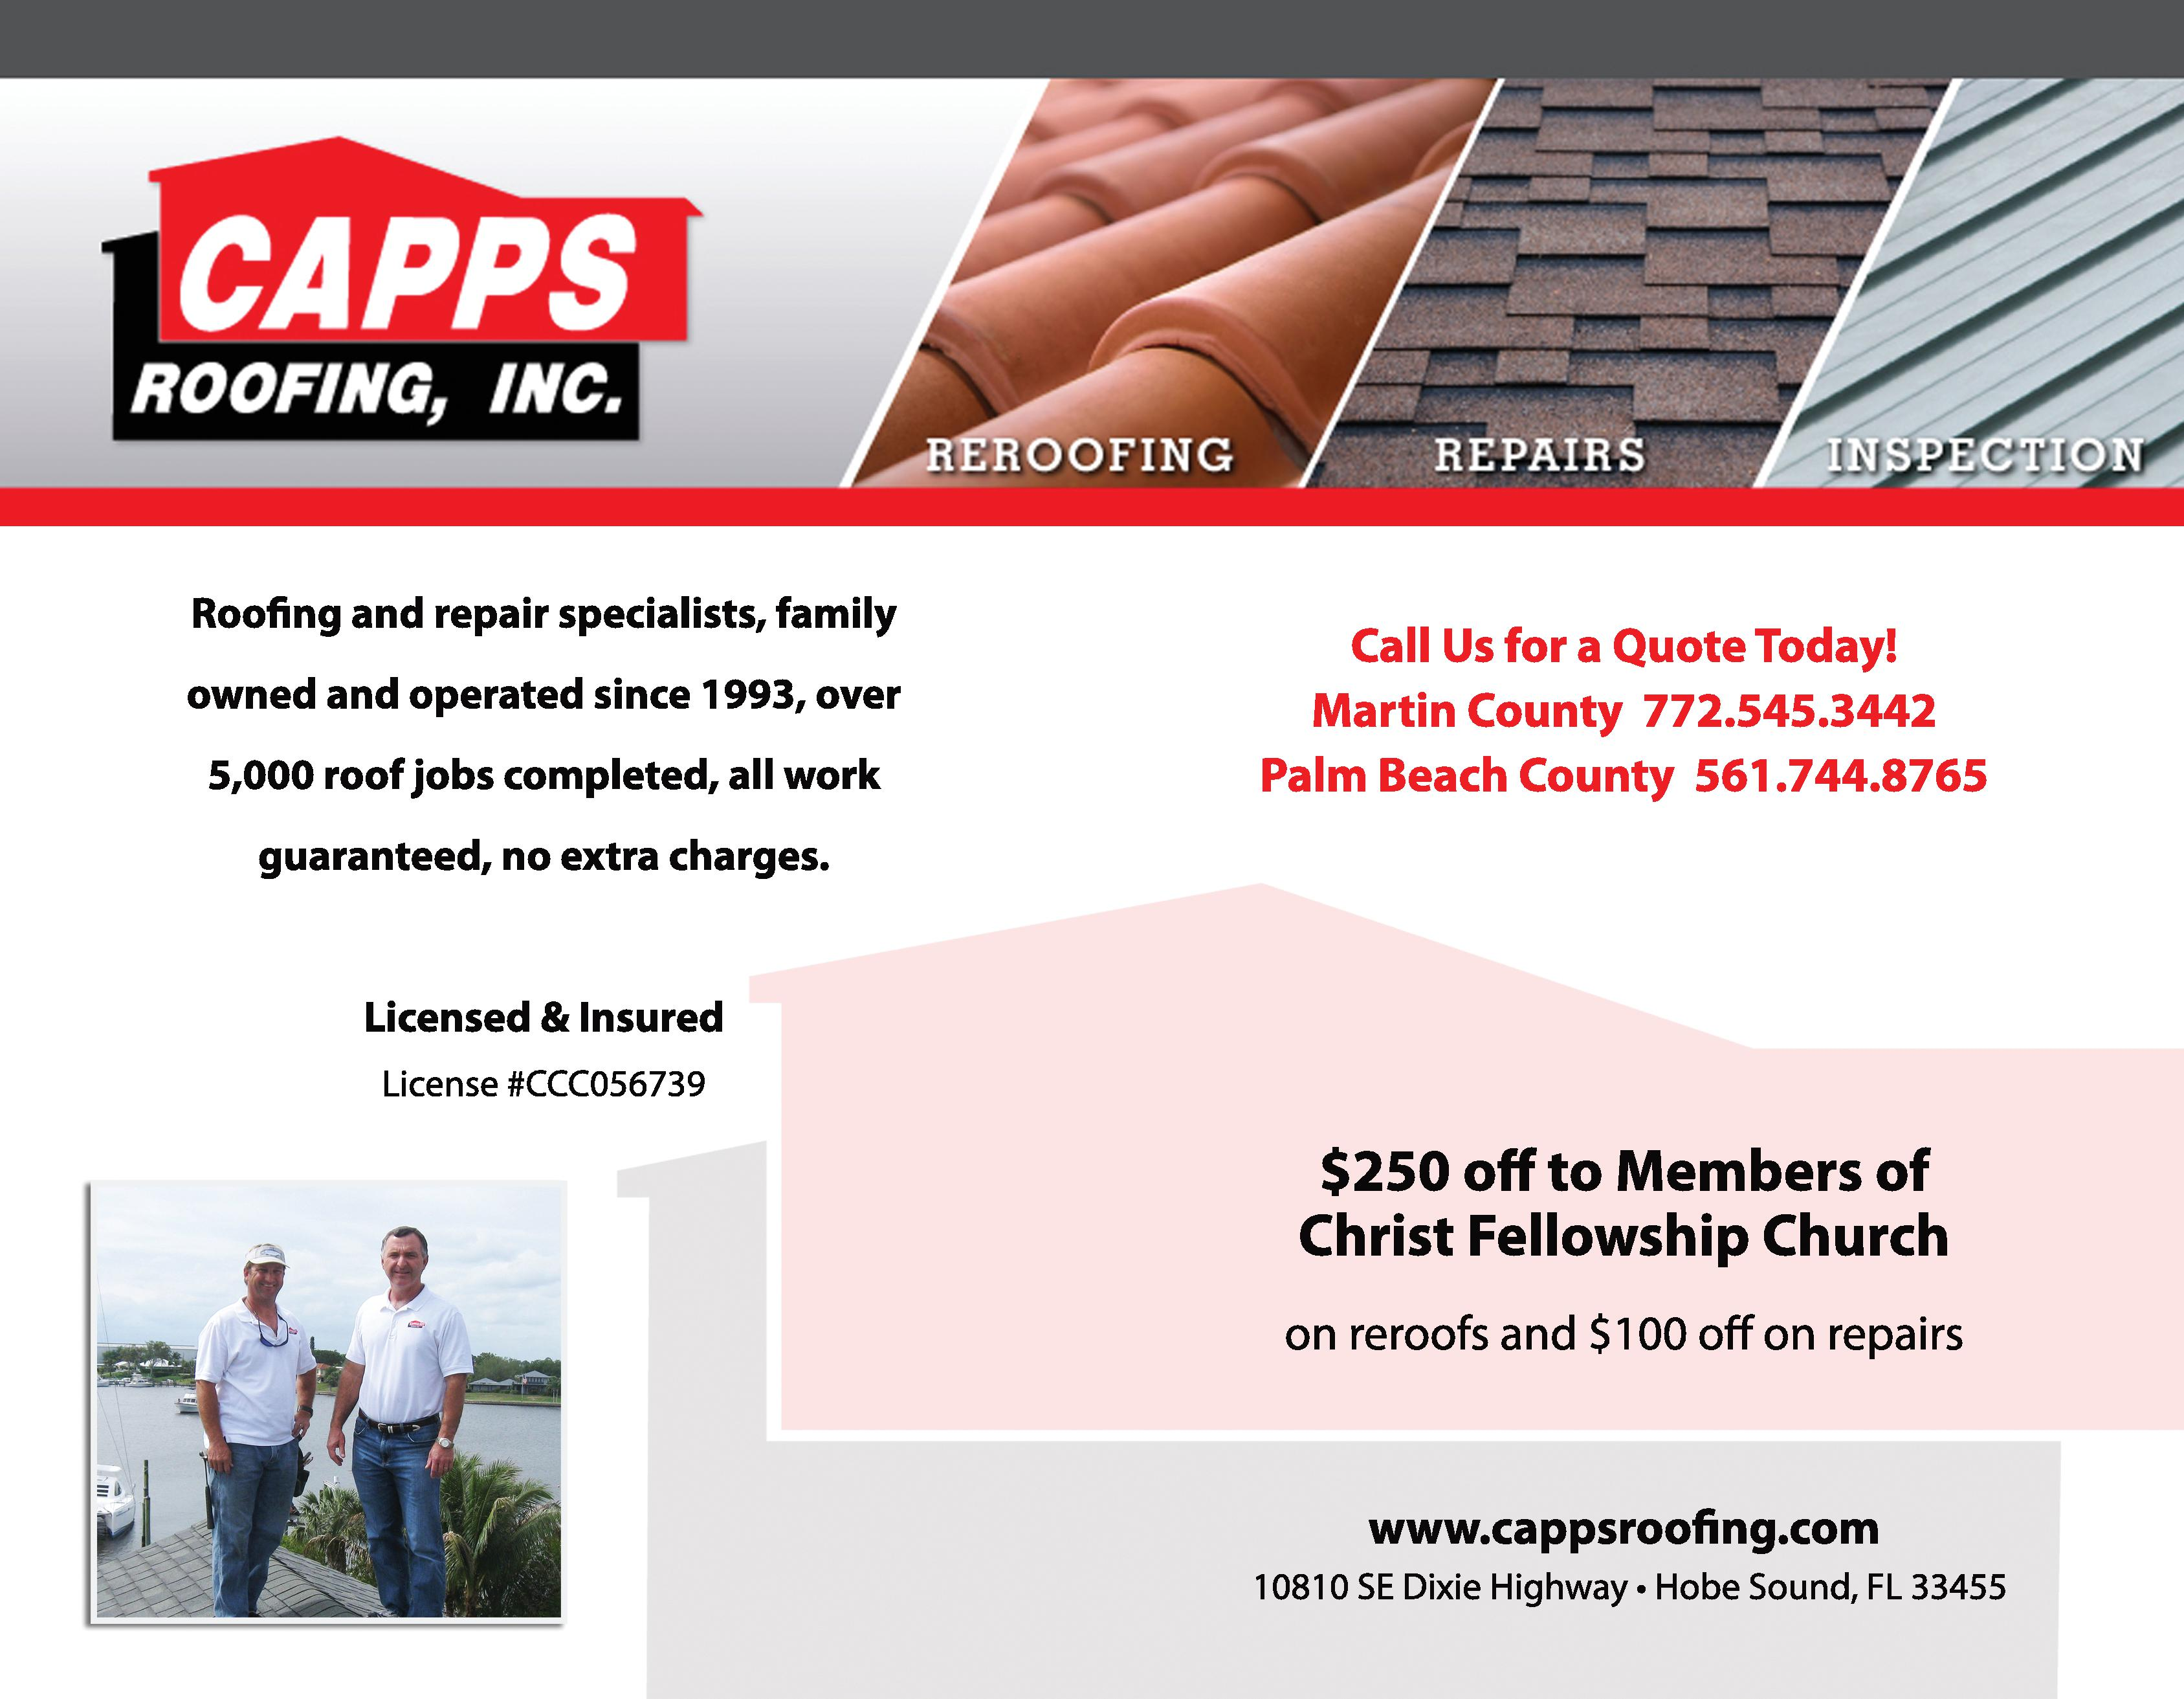 Capps Roofing, Inc.